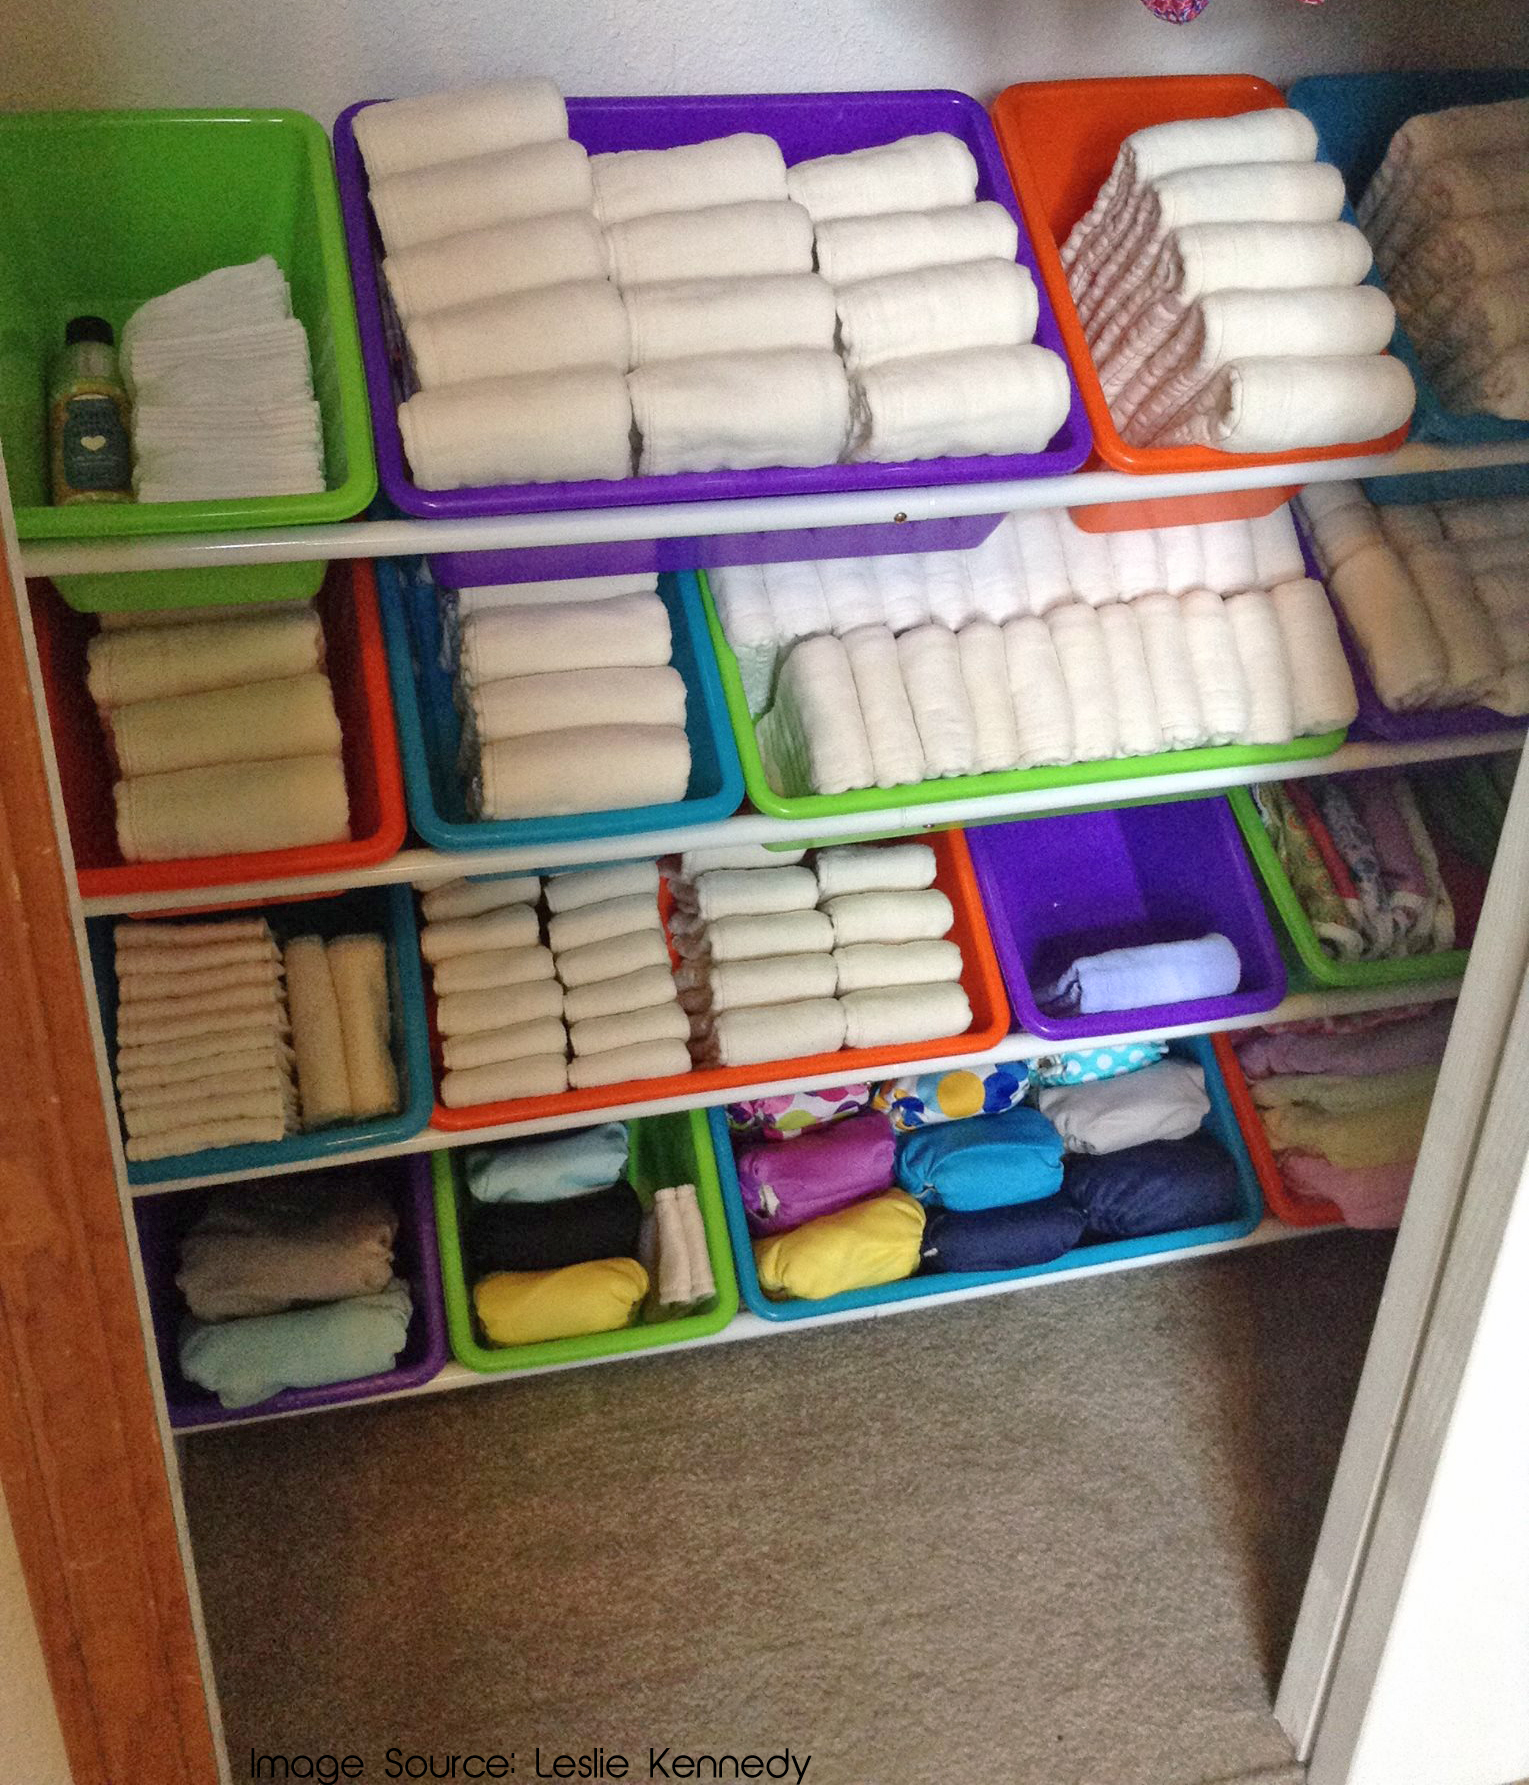 Toy organizer for cloth diapers